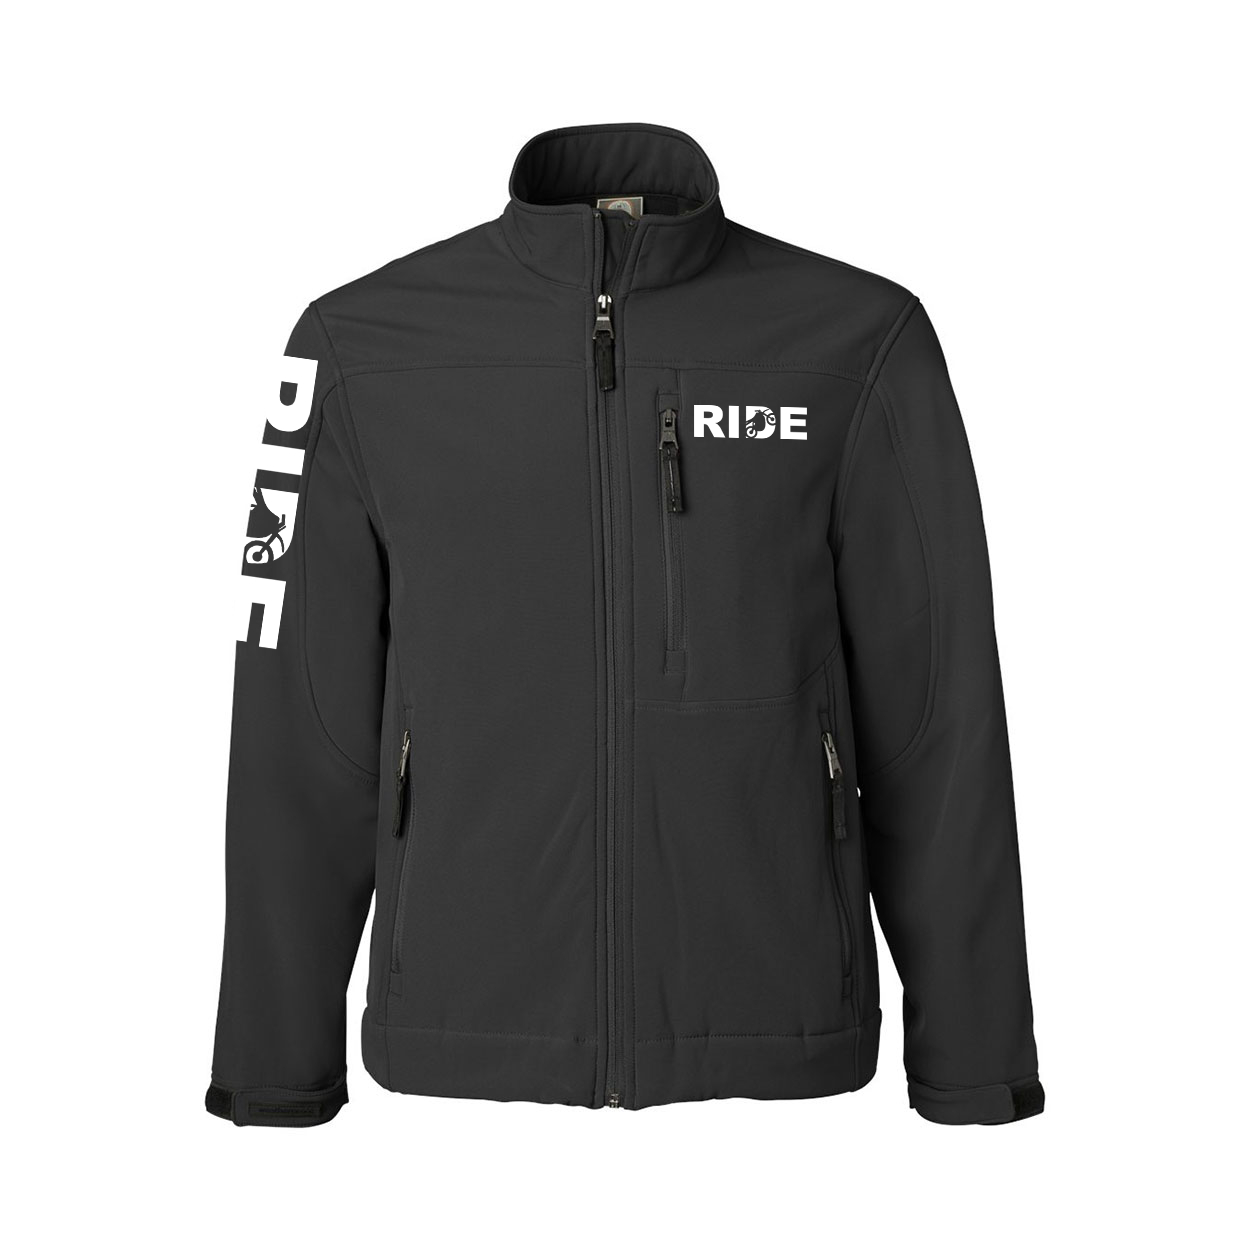 Ride Moto Logo Classic Soft Shell Weatherproof Jacket (White Logo)